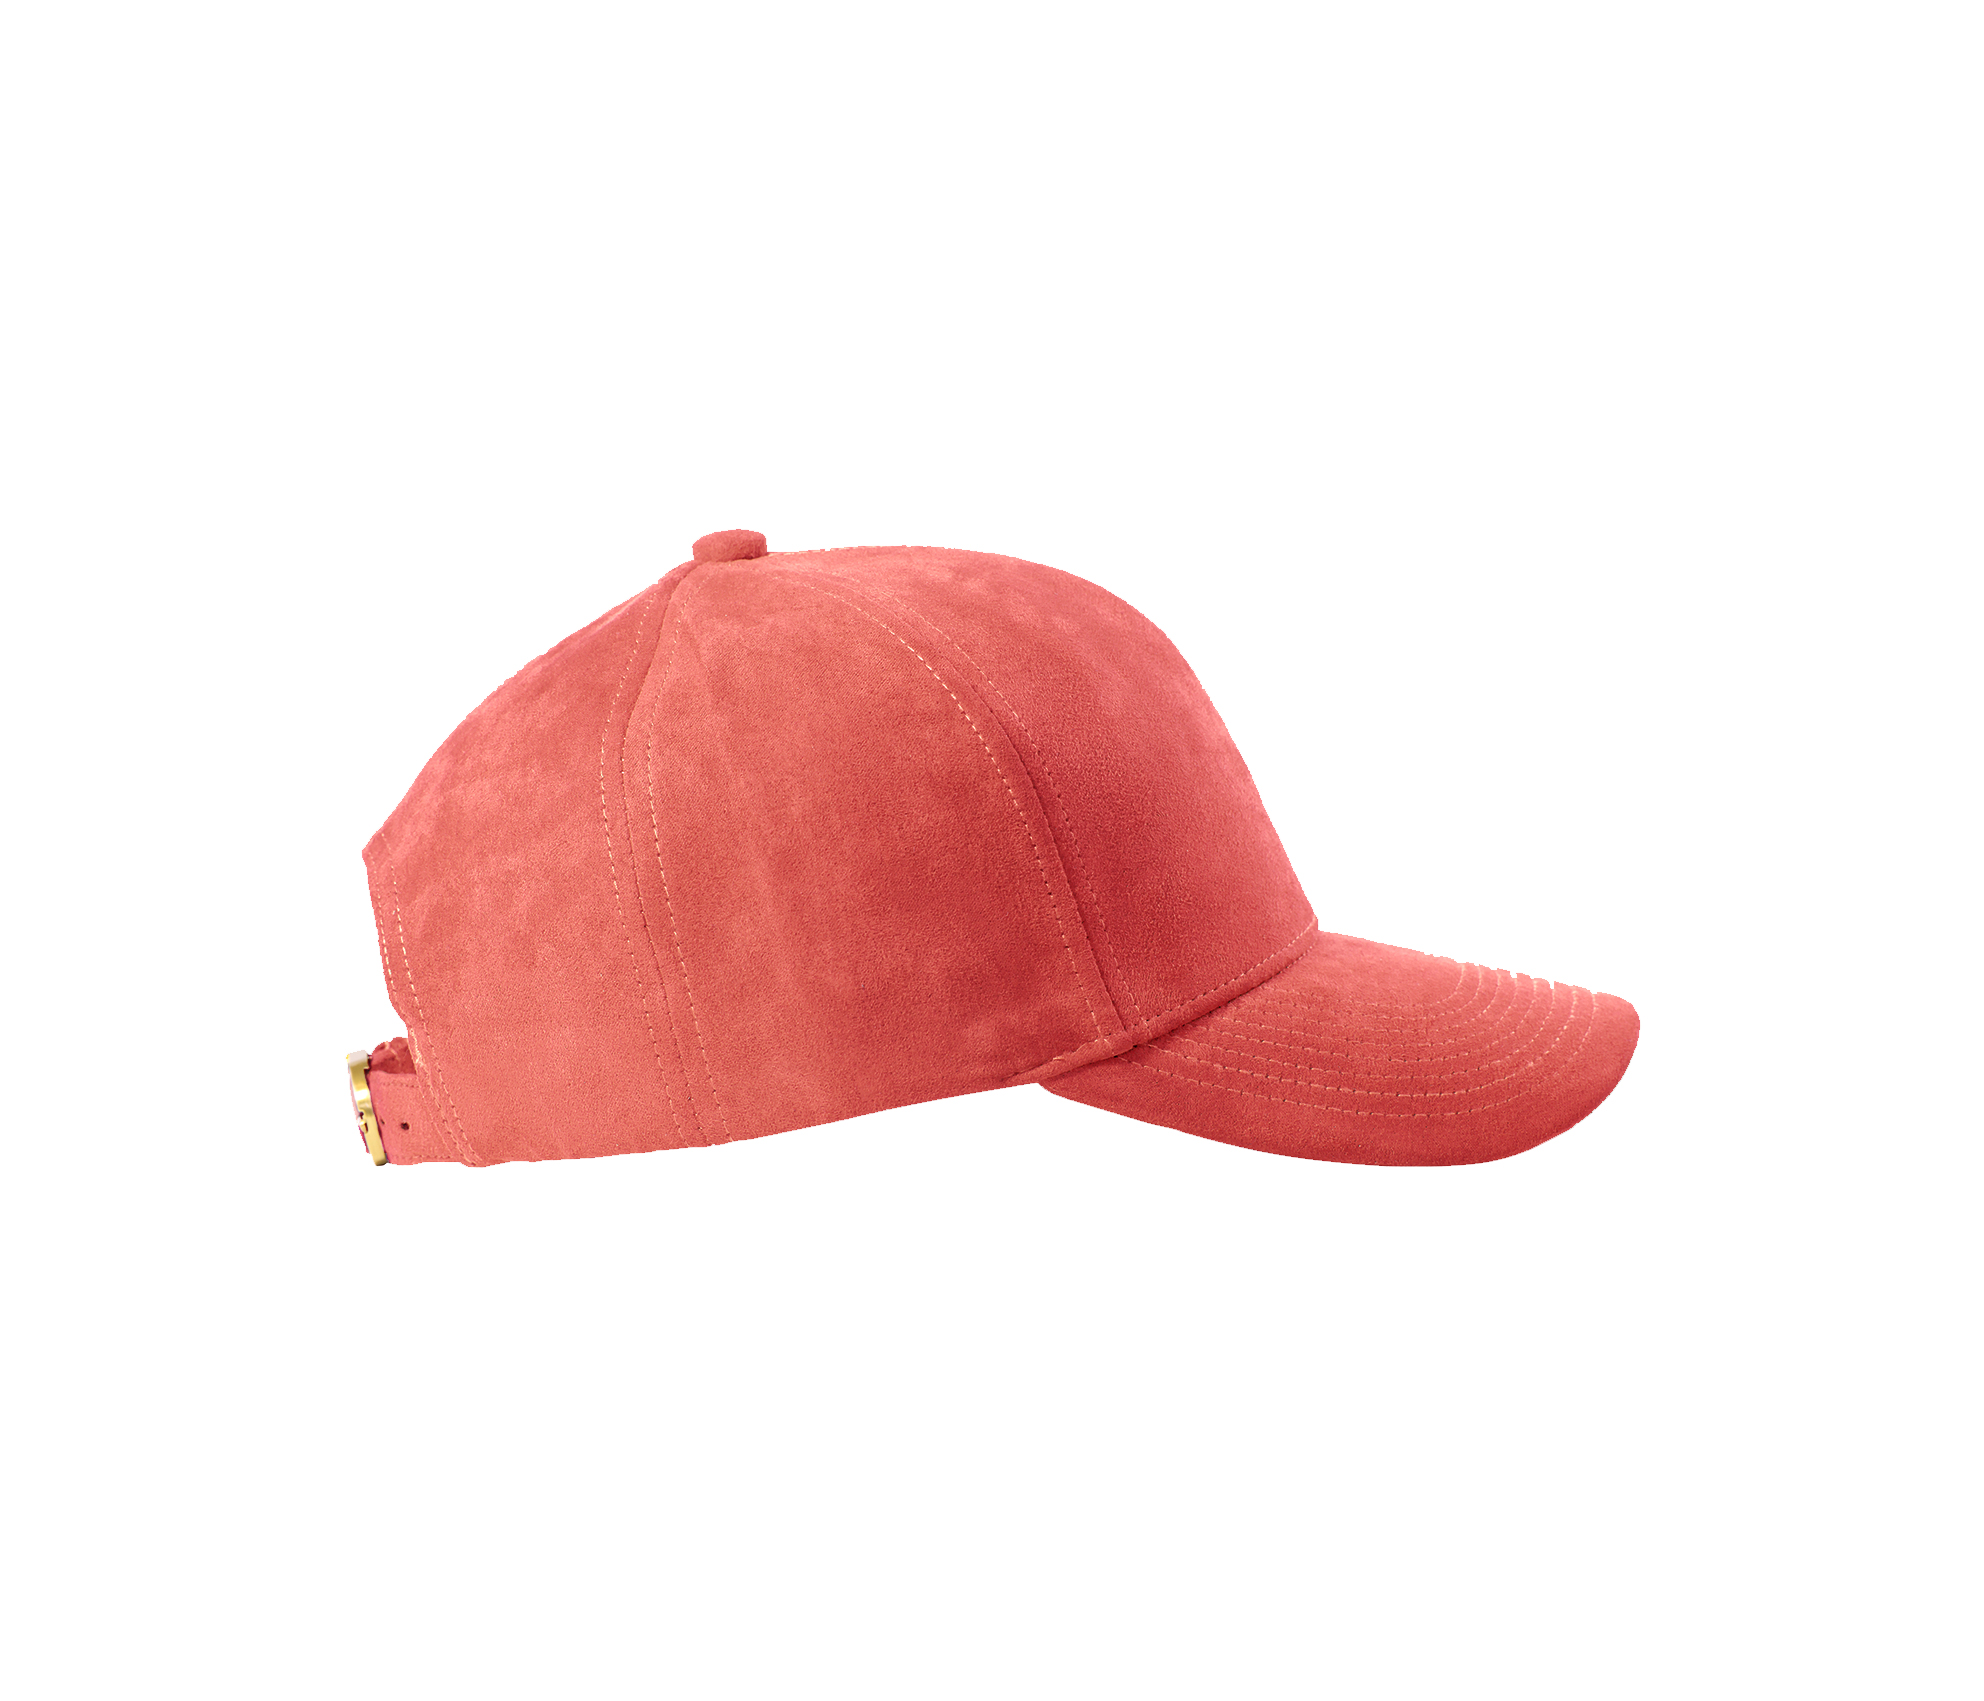 BASEBALL CAP PEACH SUEDE GOLD SIDE